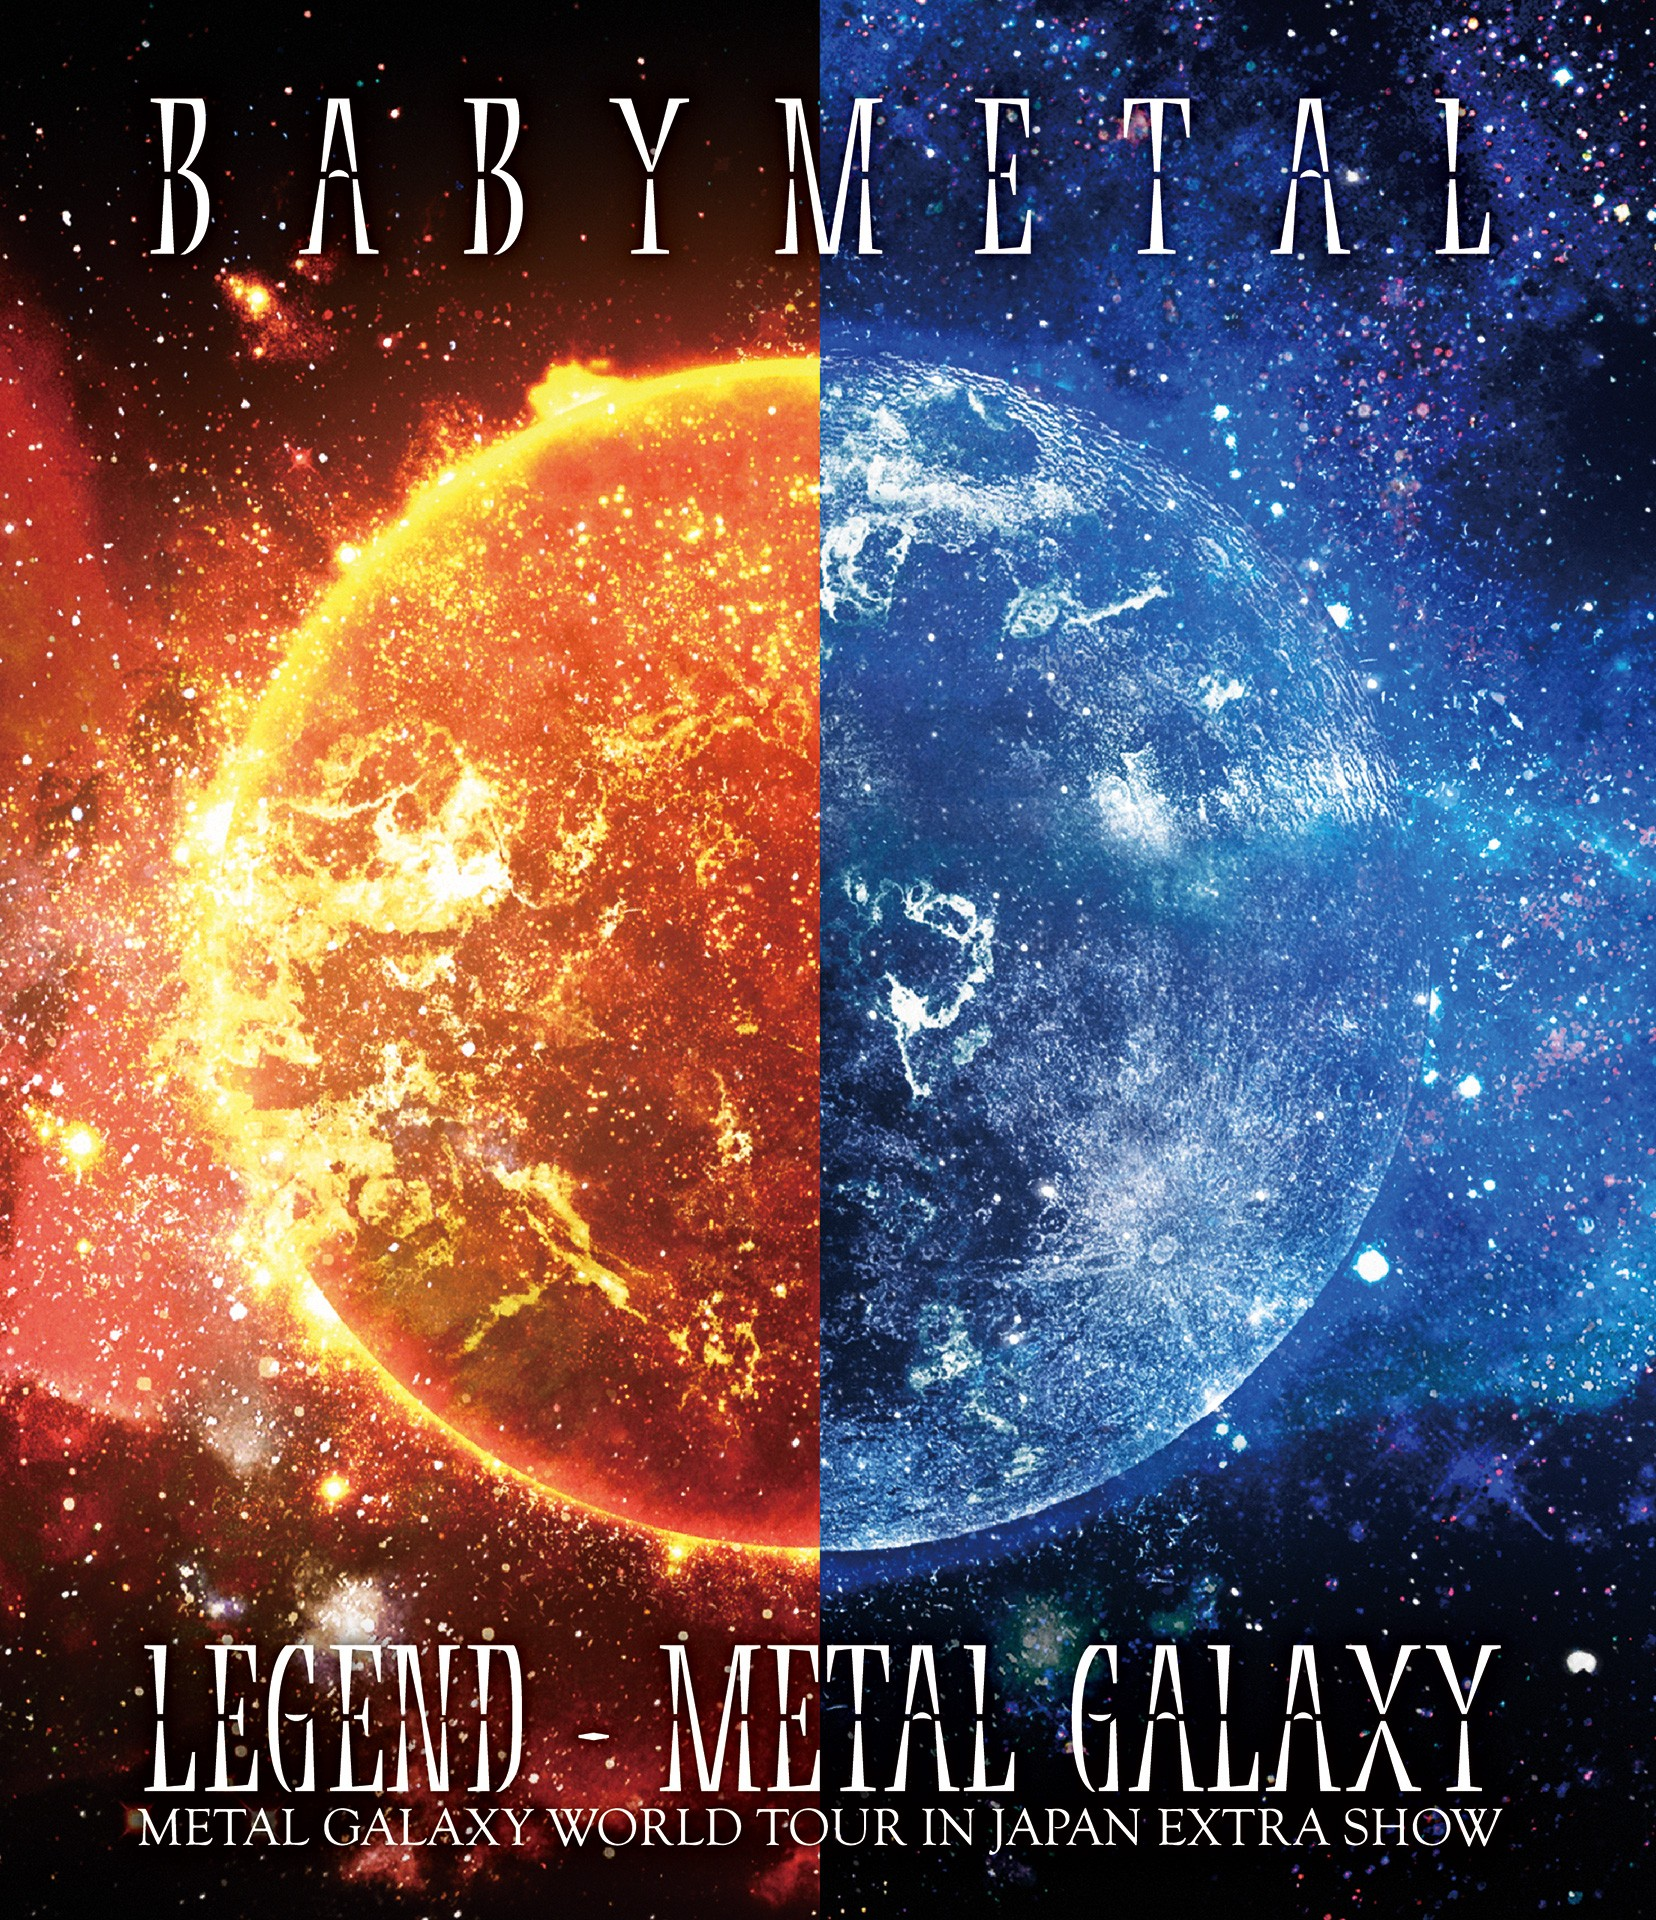 BABYMETAL – Legend – Metal Galaxy (Metal Galaxy World Tour In Japan Extra Show) (2020) [Blu-ray ISO + MKV 1080p]